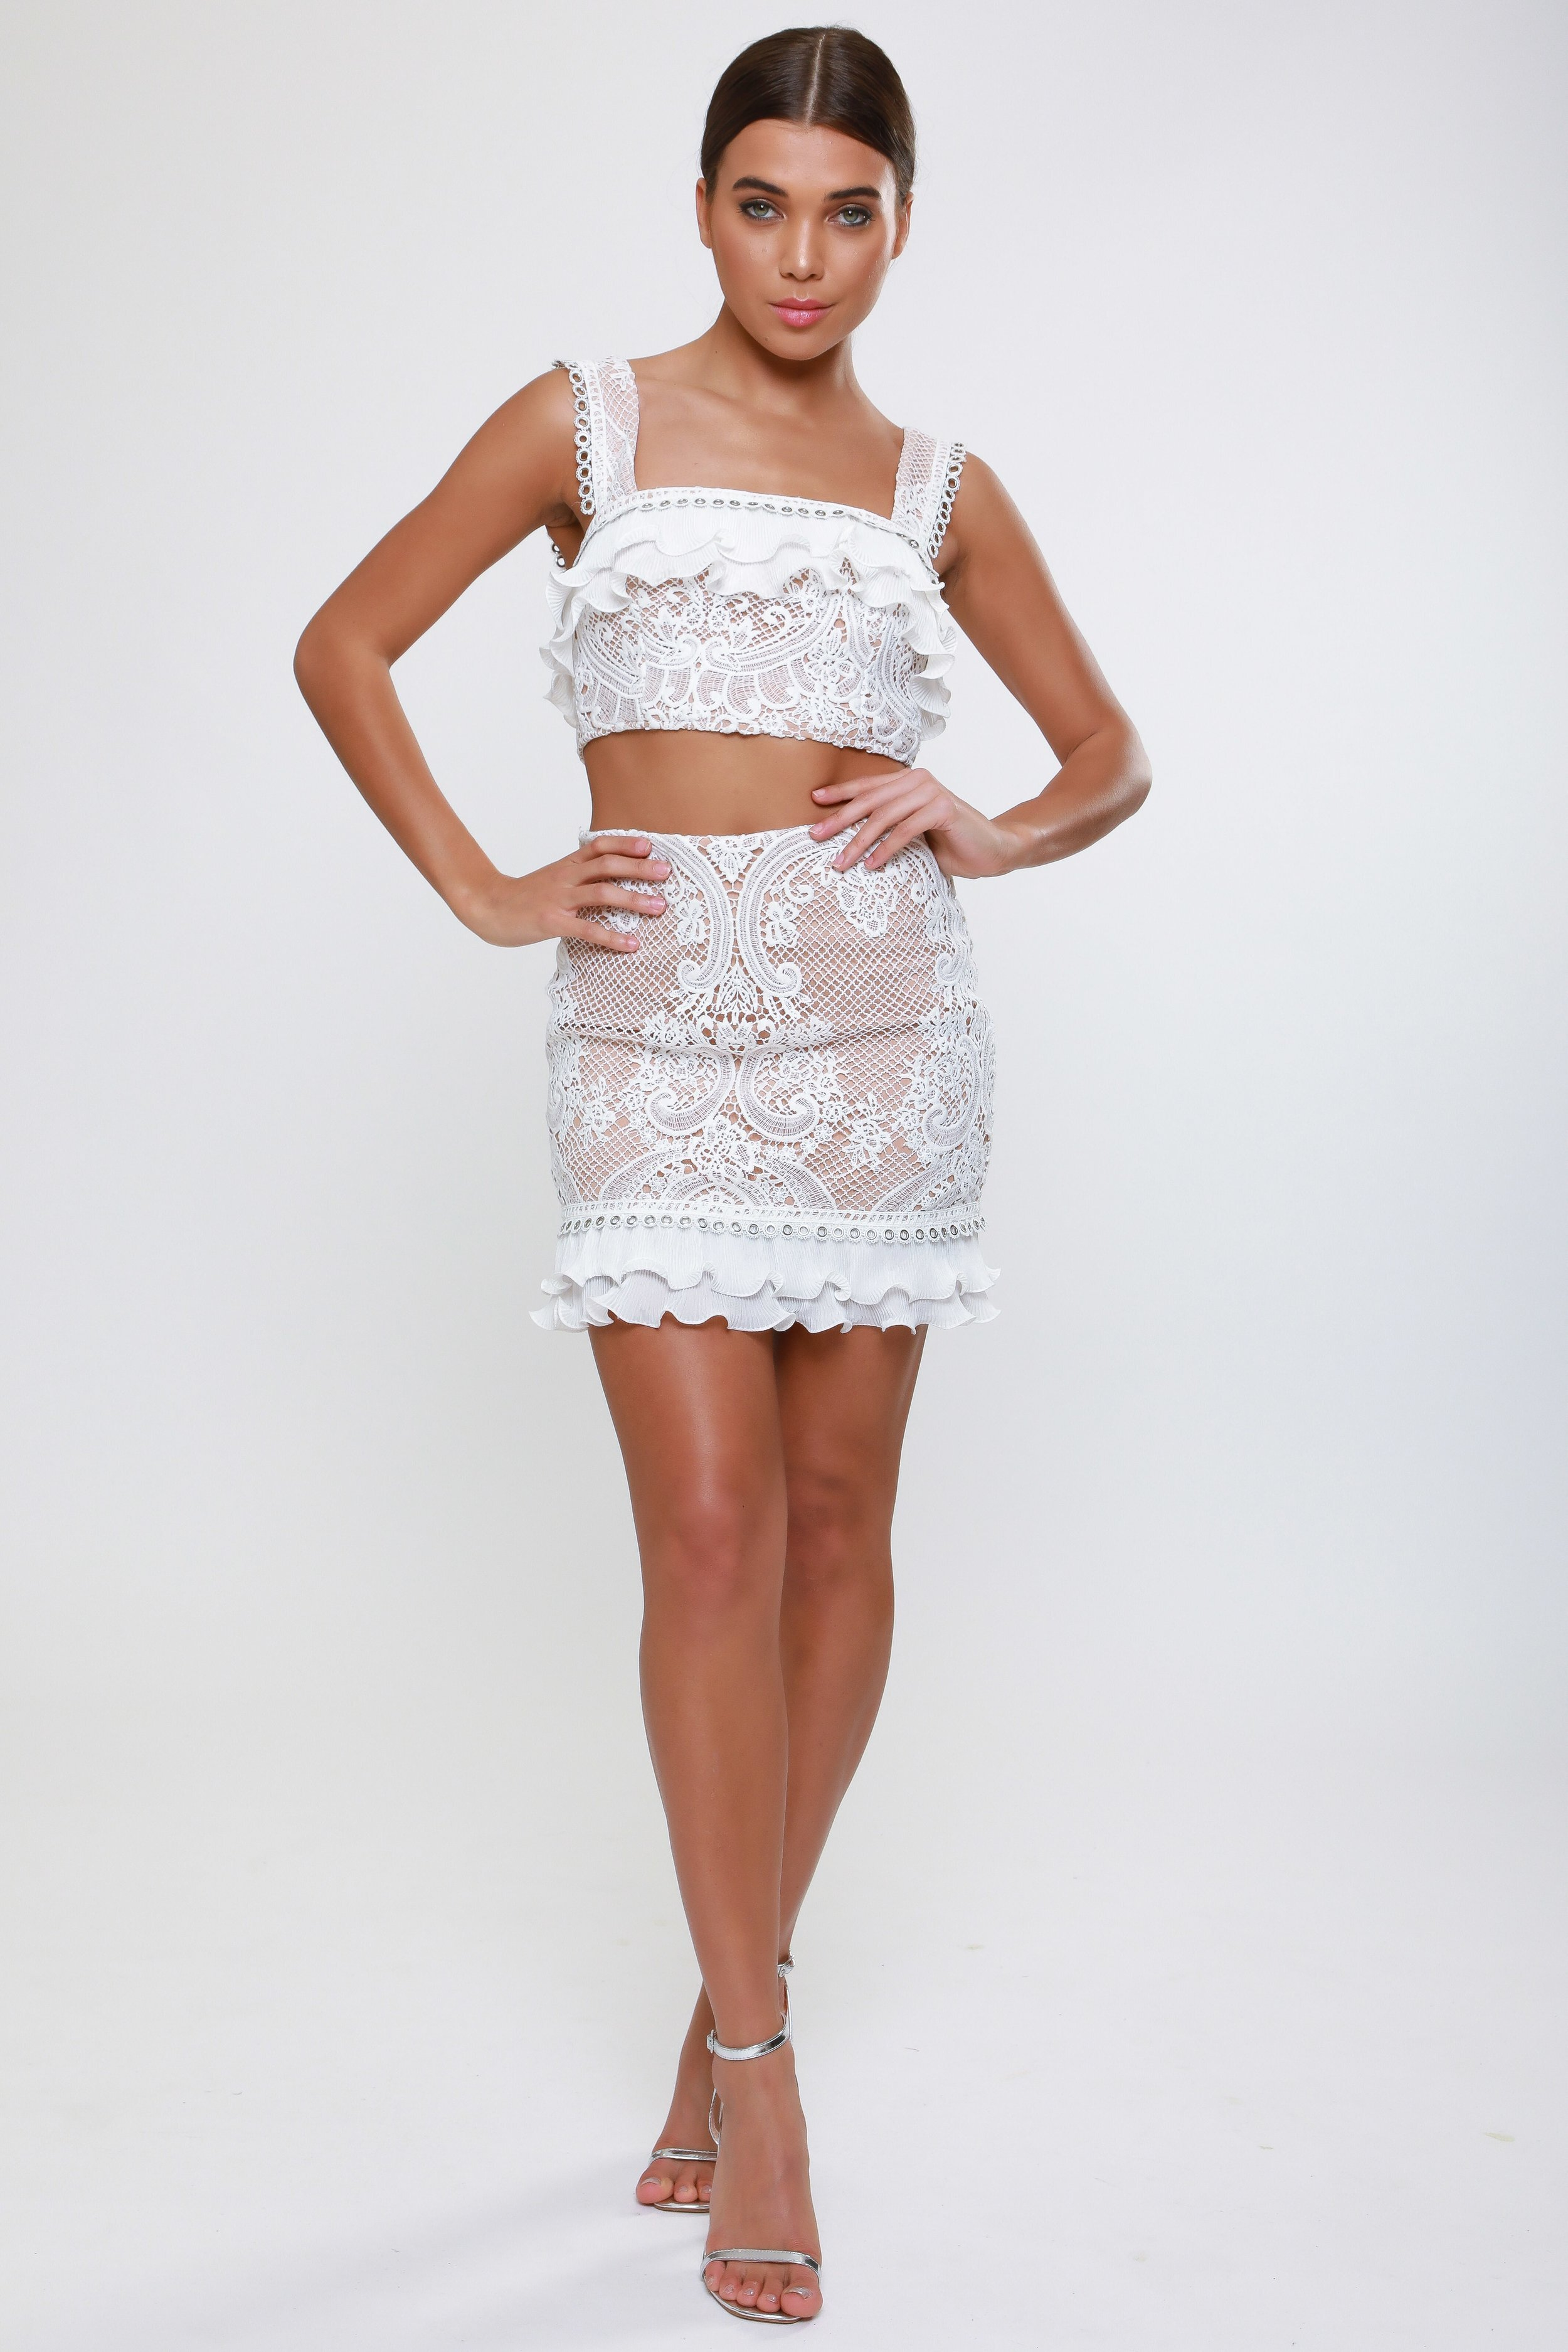 Lace Crop Top with  Trim Detail   £42.00